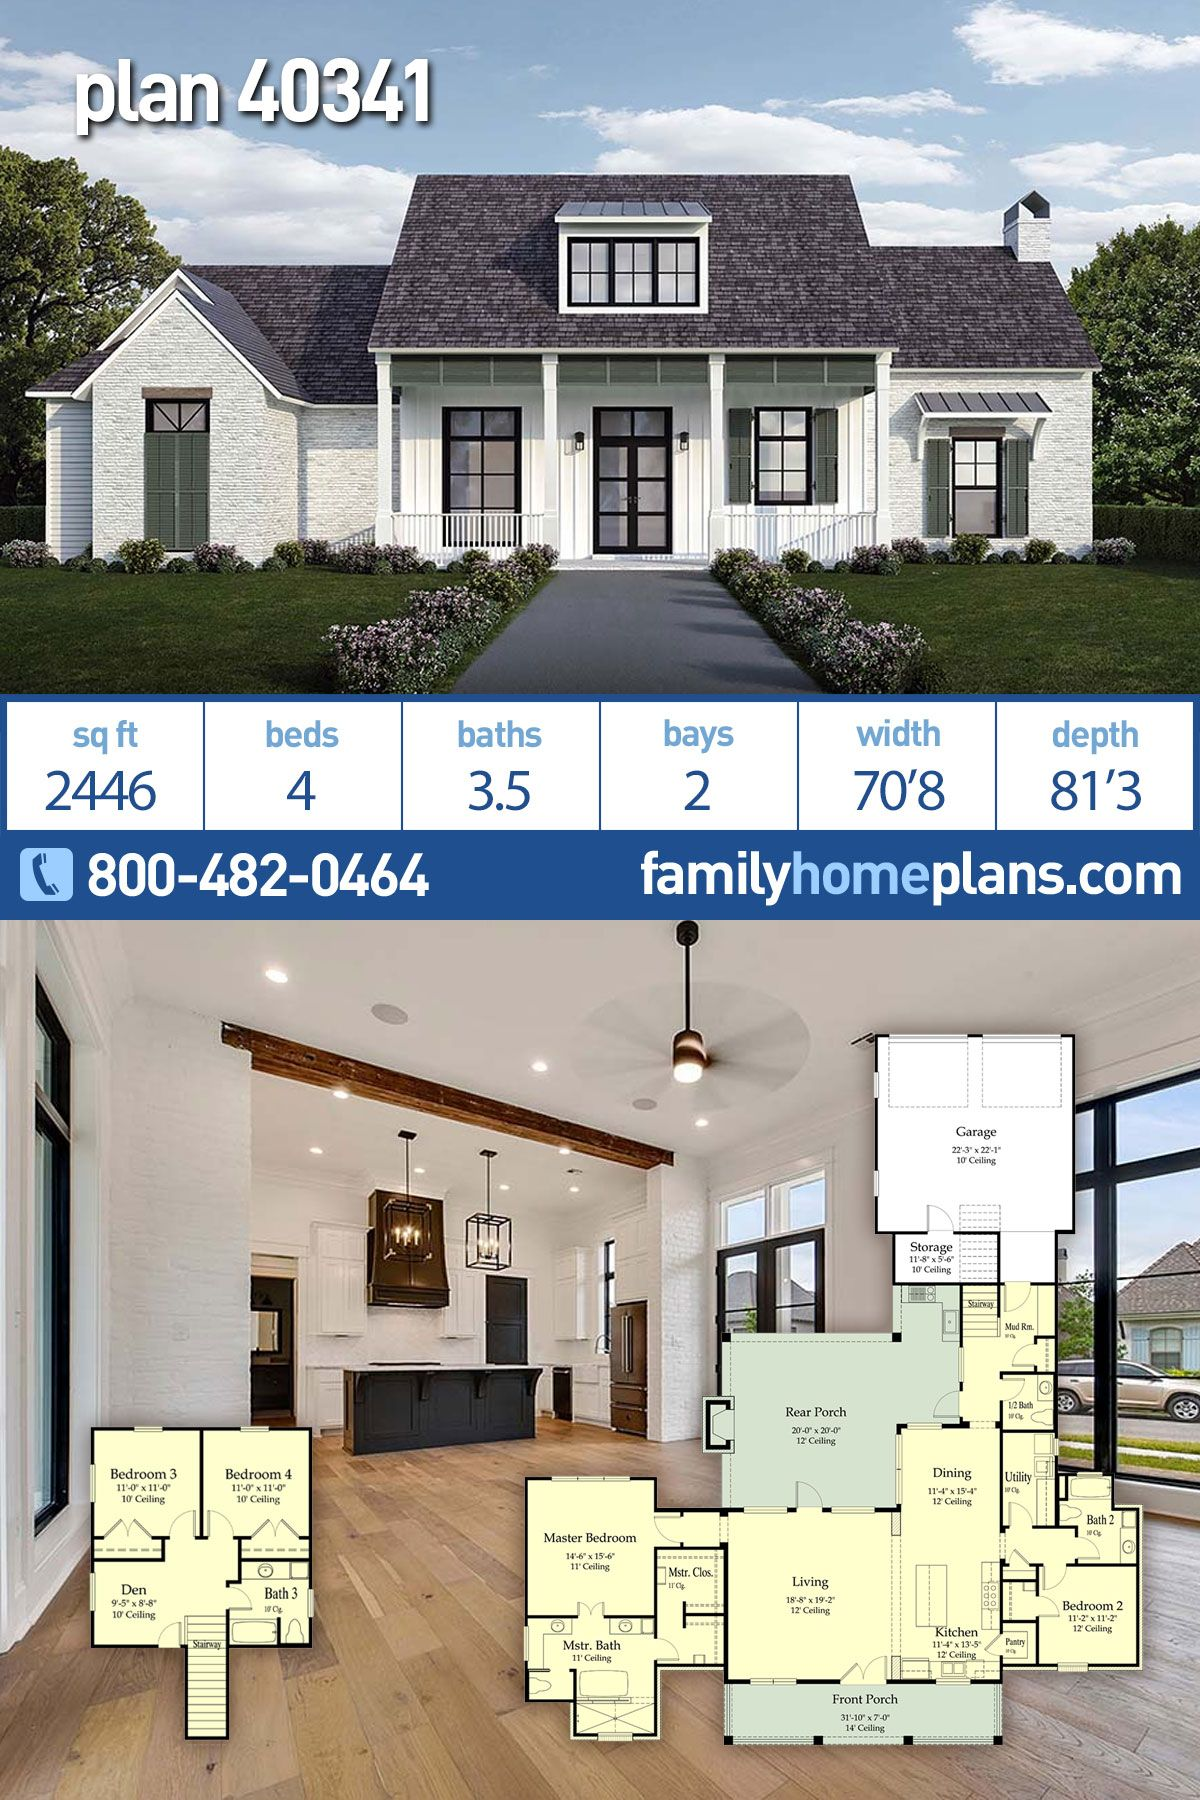 Southern Style House Plan 40341 With 4 Bed 4 Bath 2 Car Garage Country Style House Plans Porch House Plans Country House Plans